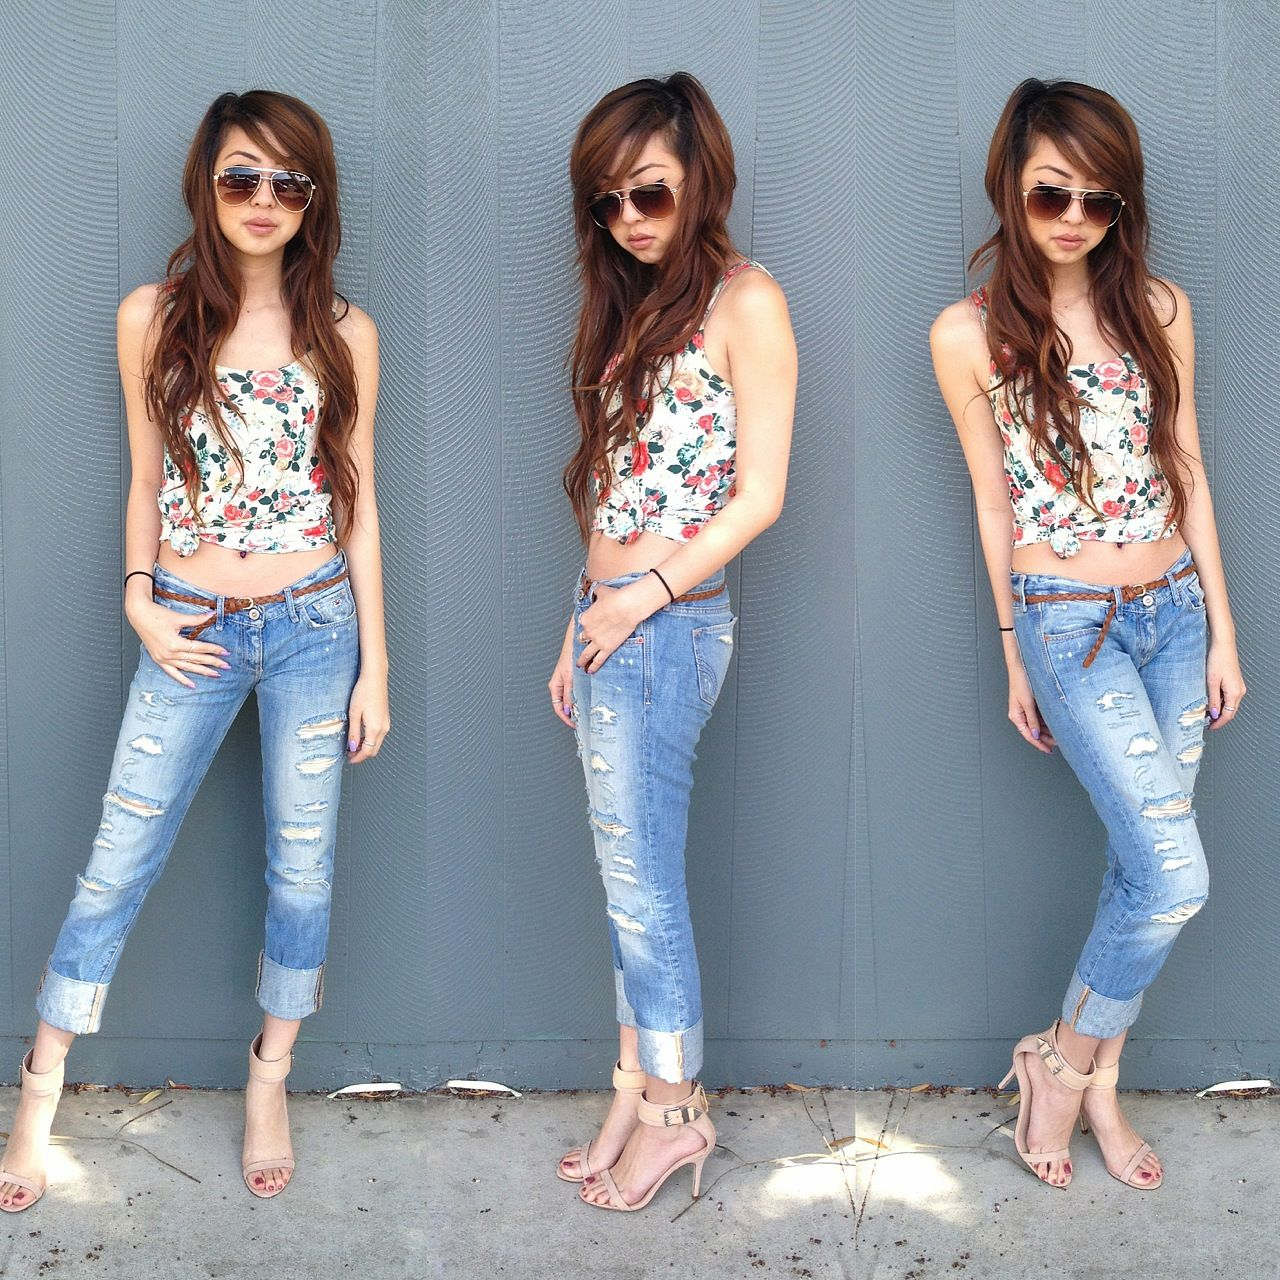 Outfit Ideas with Jeans [12 pics]   Fashion Inspiration Blog